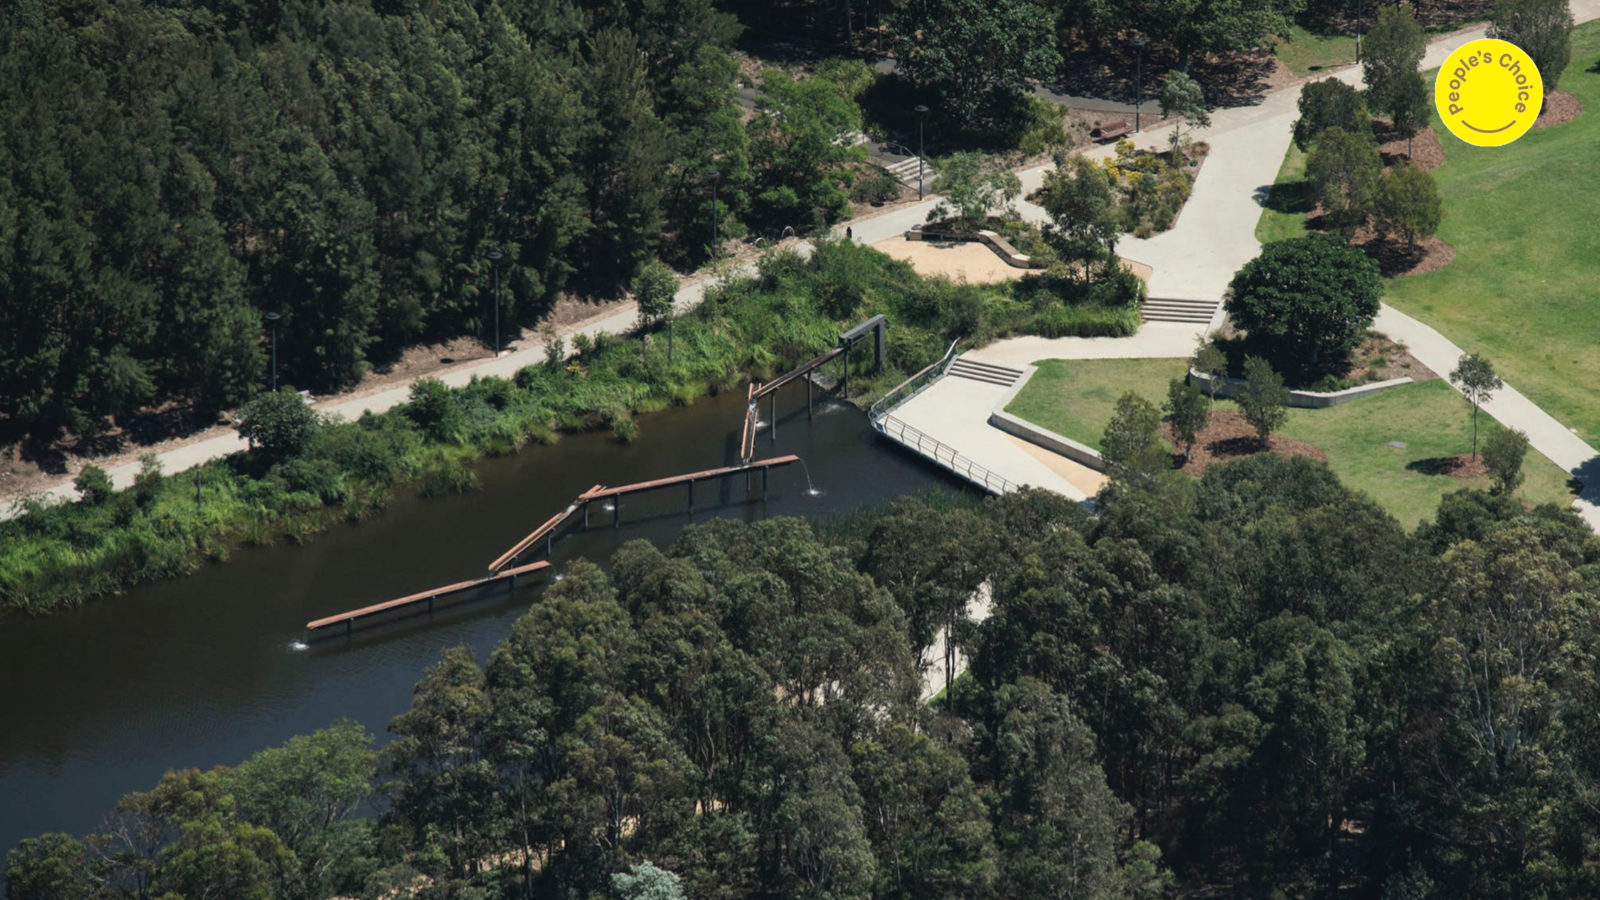 Sydney Park Water Re-Use Project, Australia, AZ Awards 2019